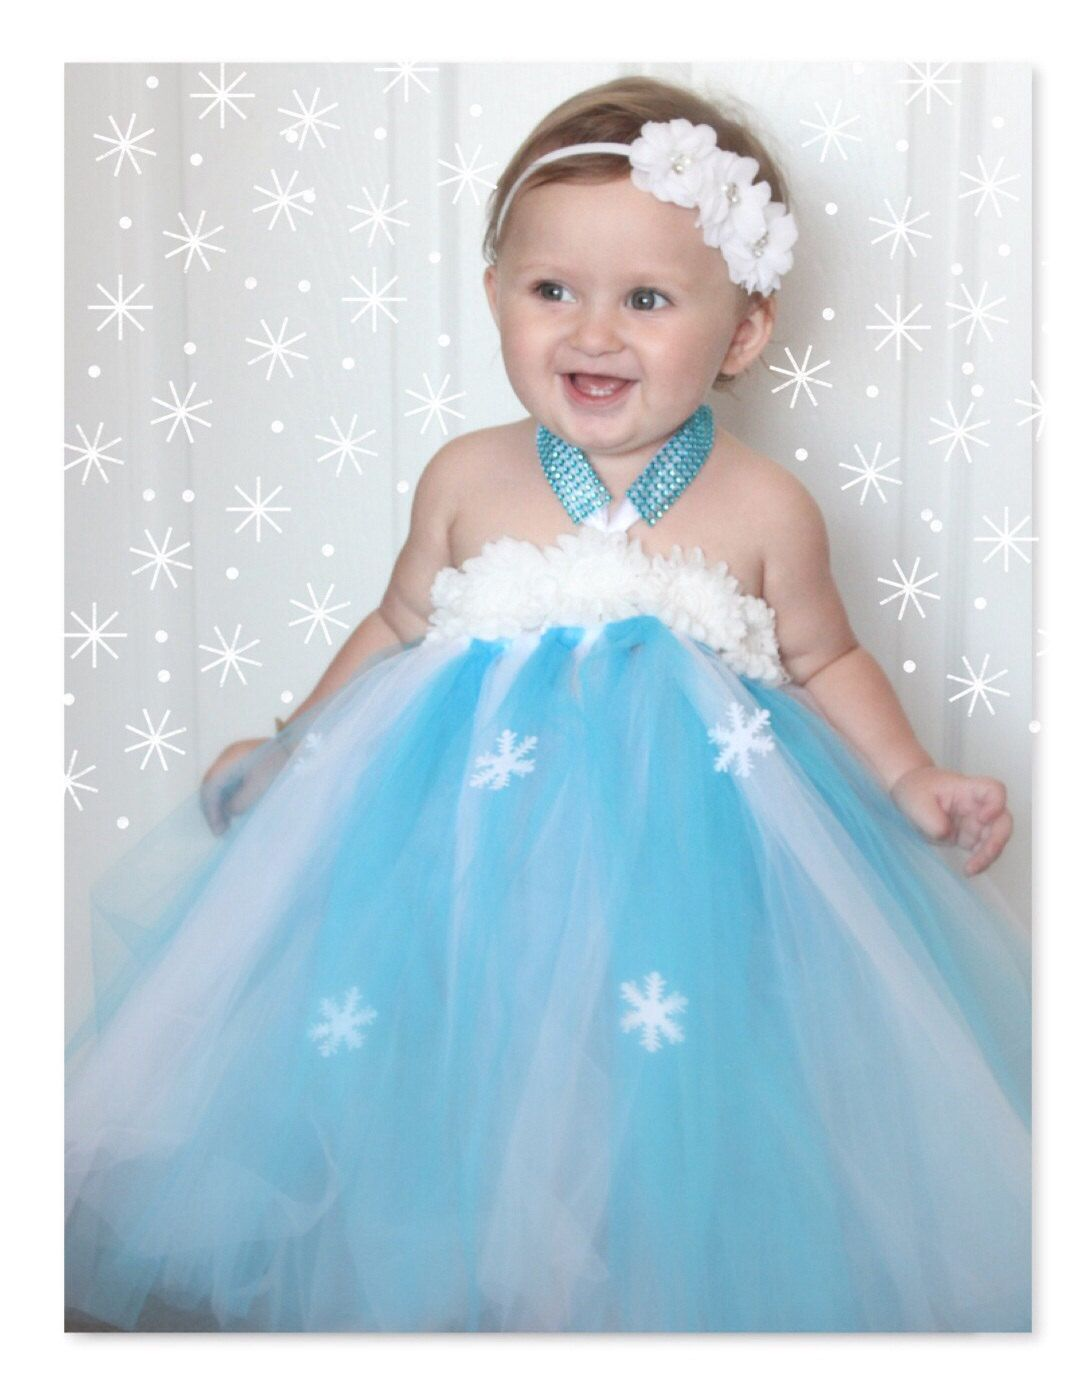 d37fec025 Frozen+Inspired+Snowflake+Tutu+Dress+for+Baby+by+AverysCoutureLook ...